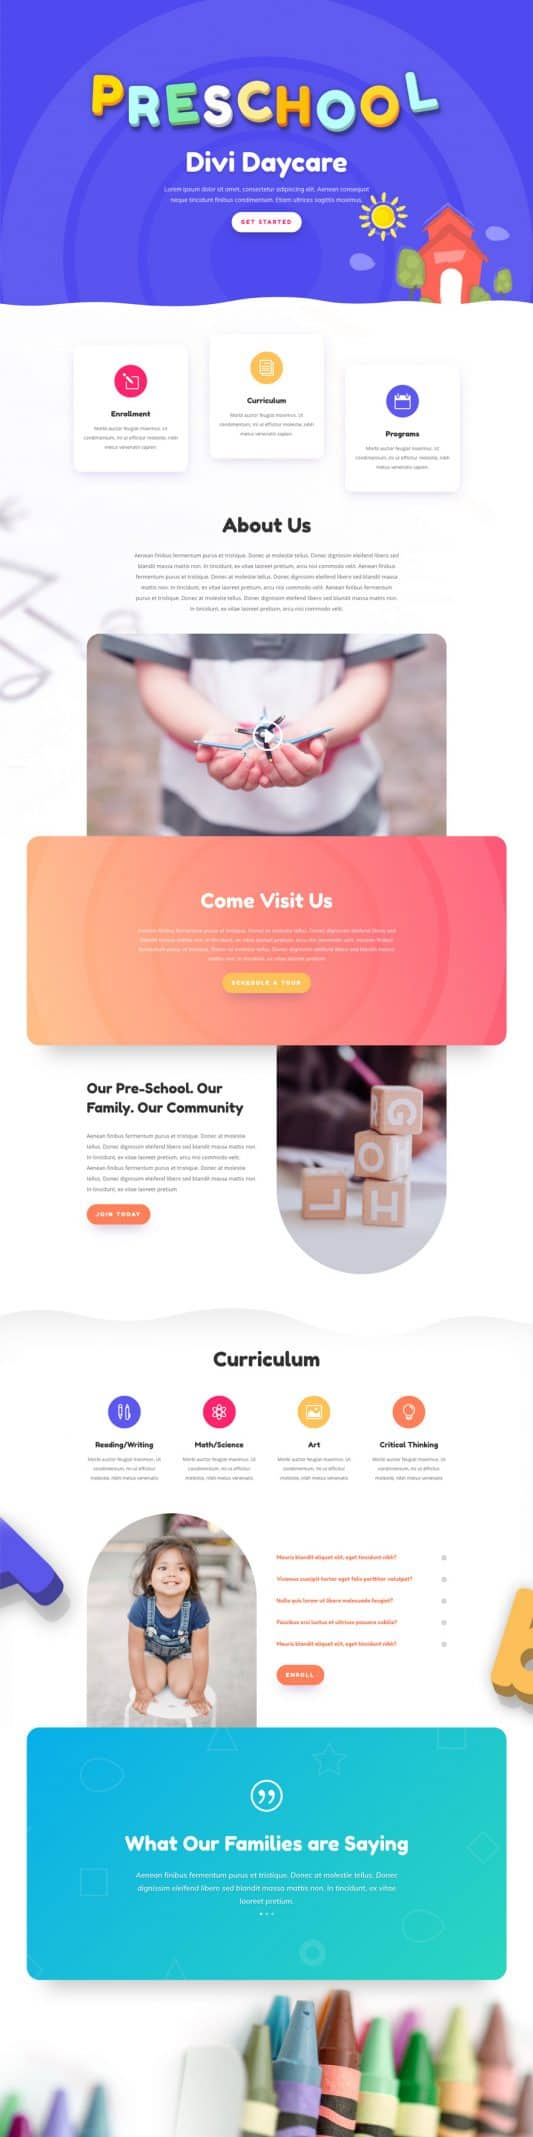 Day Care Web Design 2